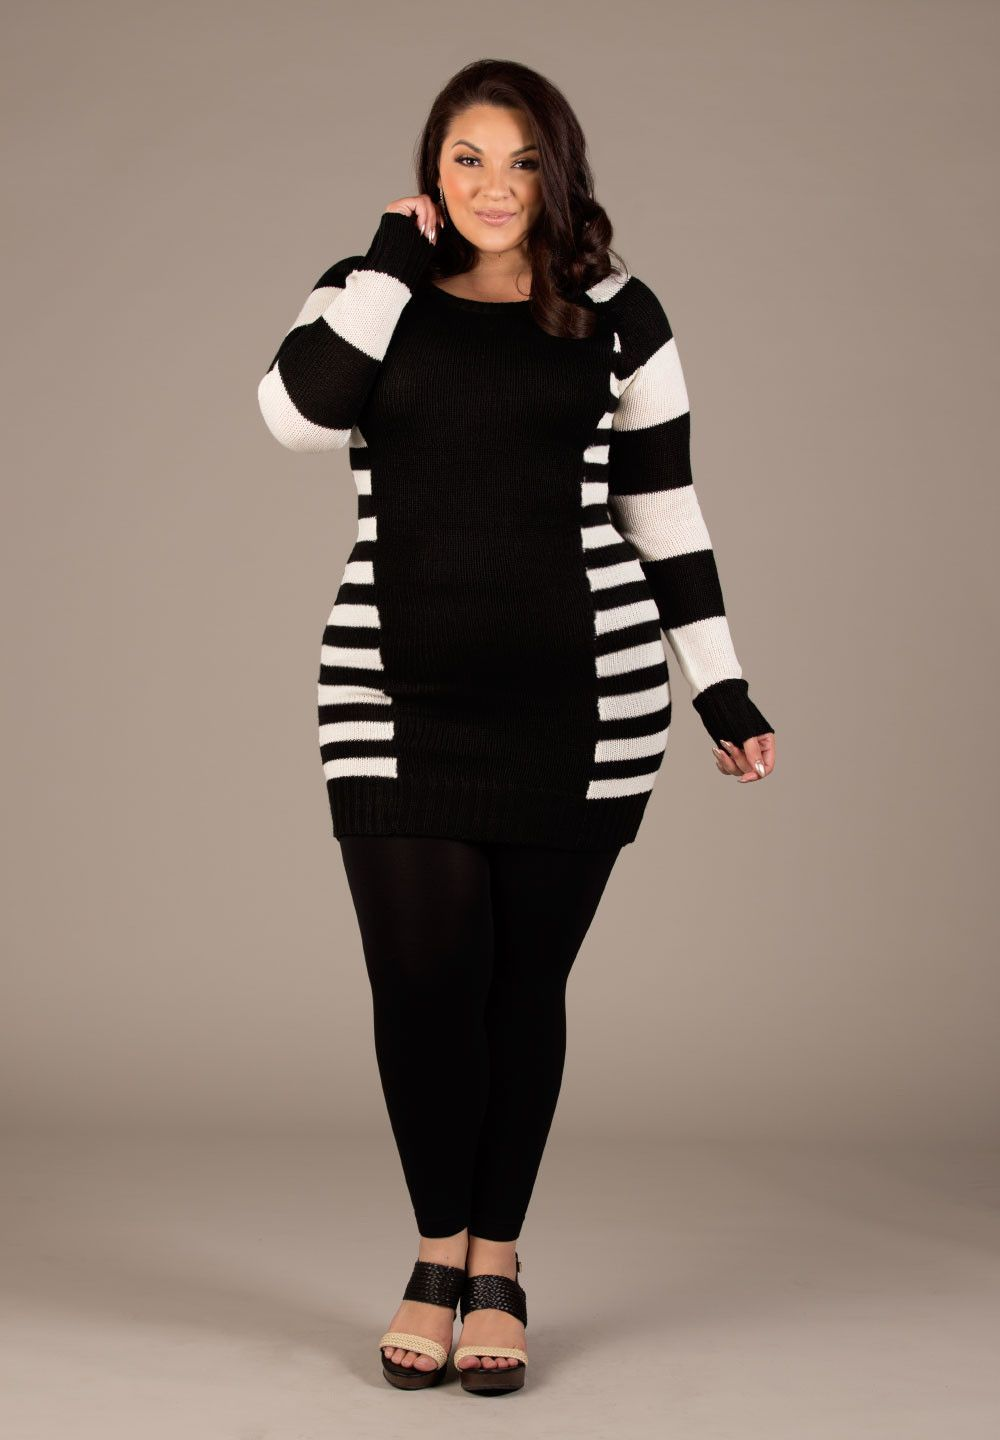 Buy Sophisticated and stylish plus size clothing picture trends